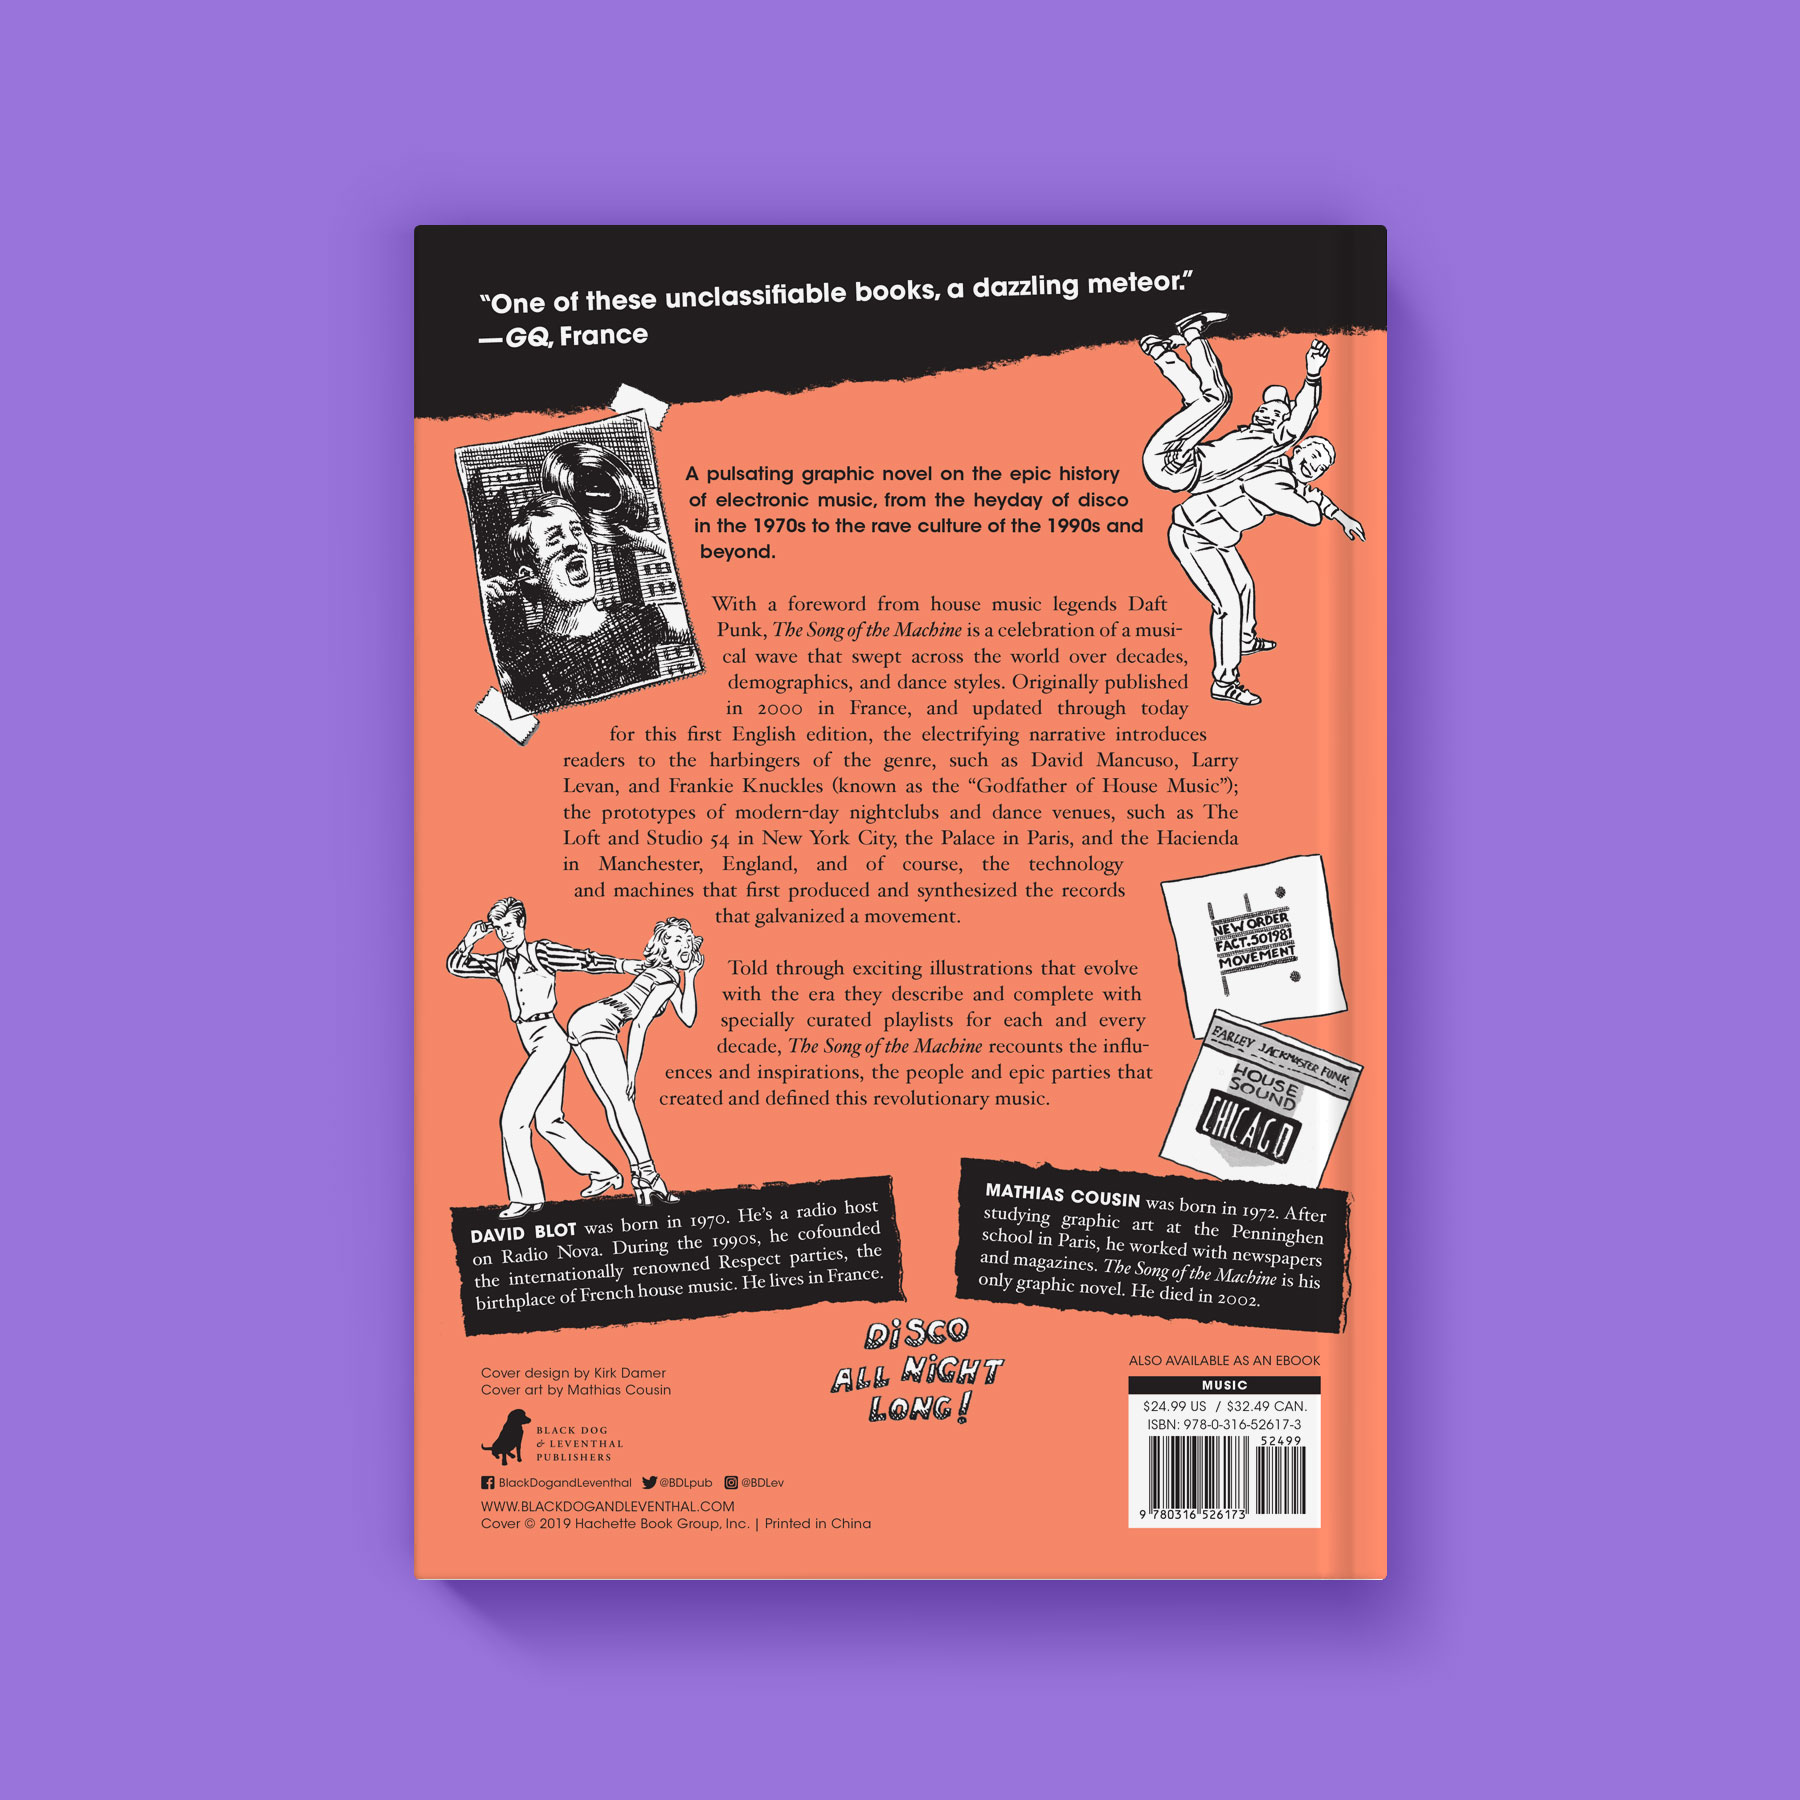 The Song of the Machine back cover